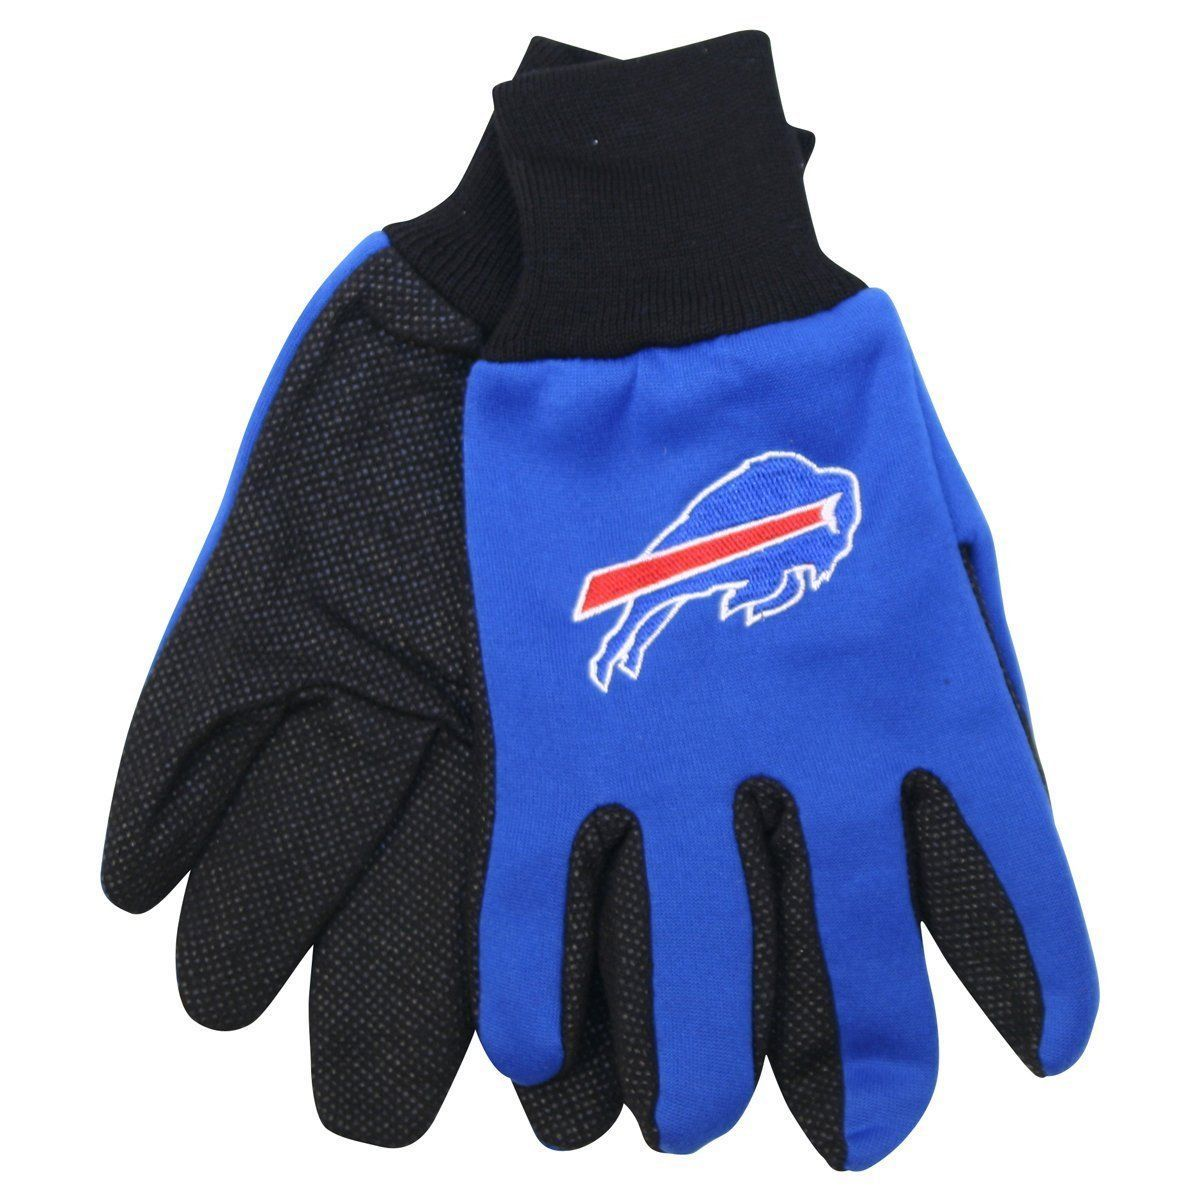 BUFFALO BILLS TEAM TAILGATE GAME DAY PARTY UTILITY WORK GLOVES NFL FOOTBALL